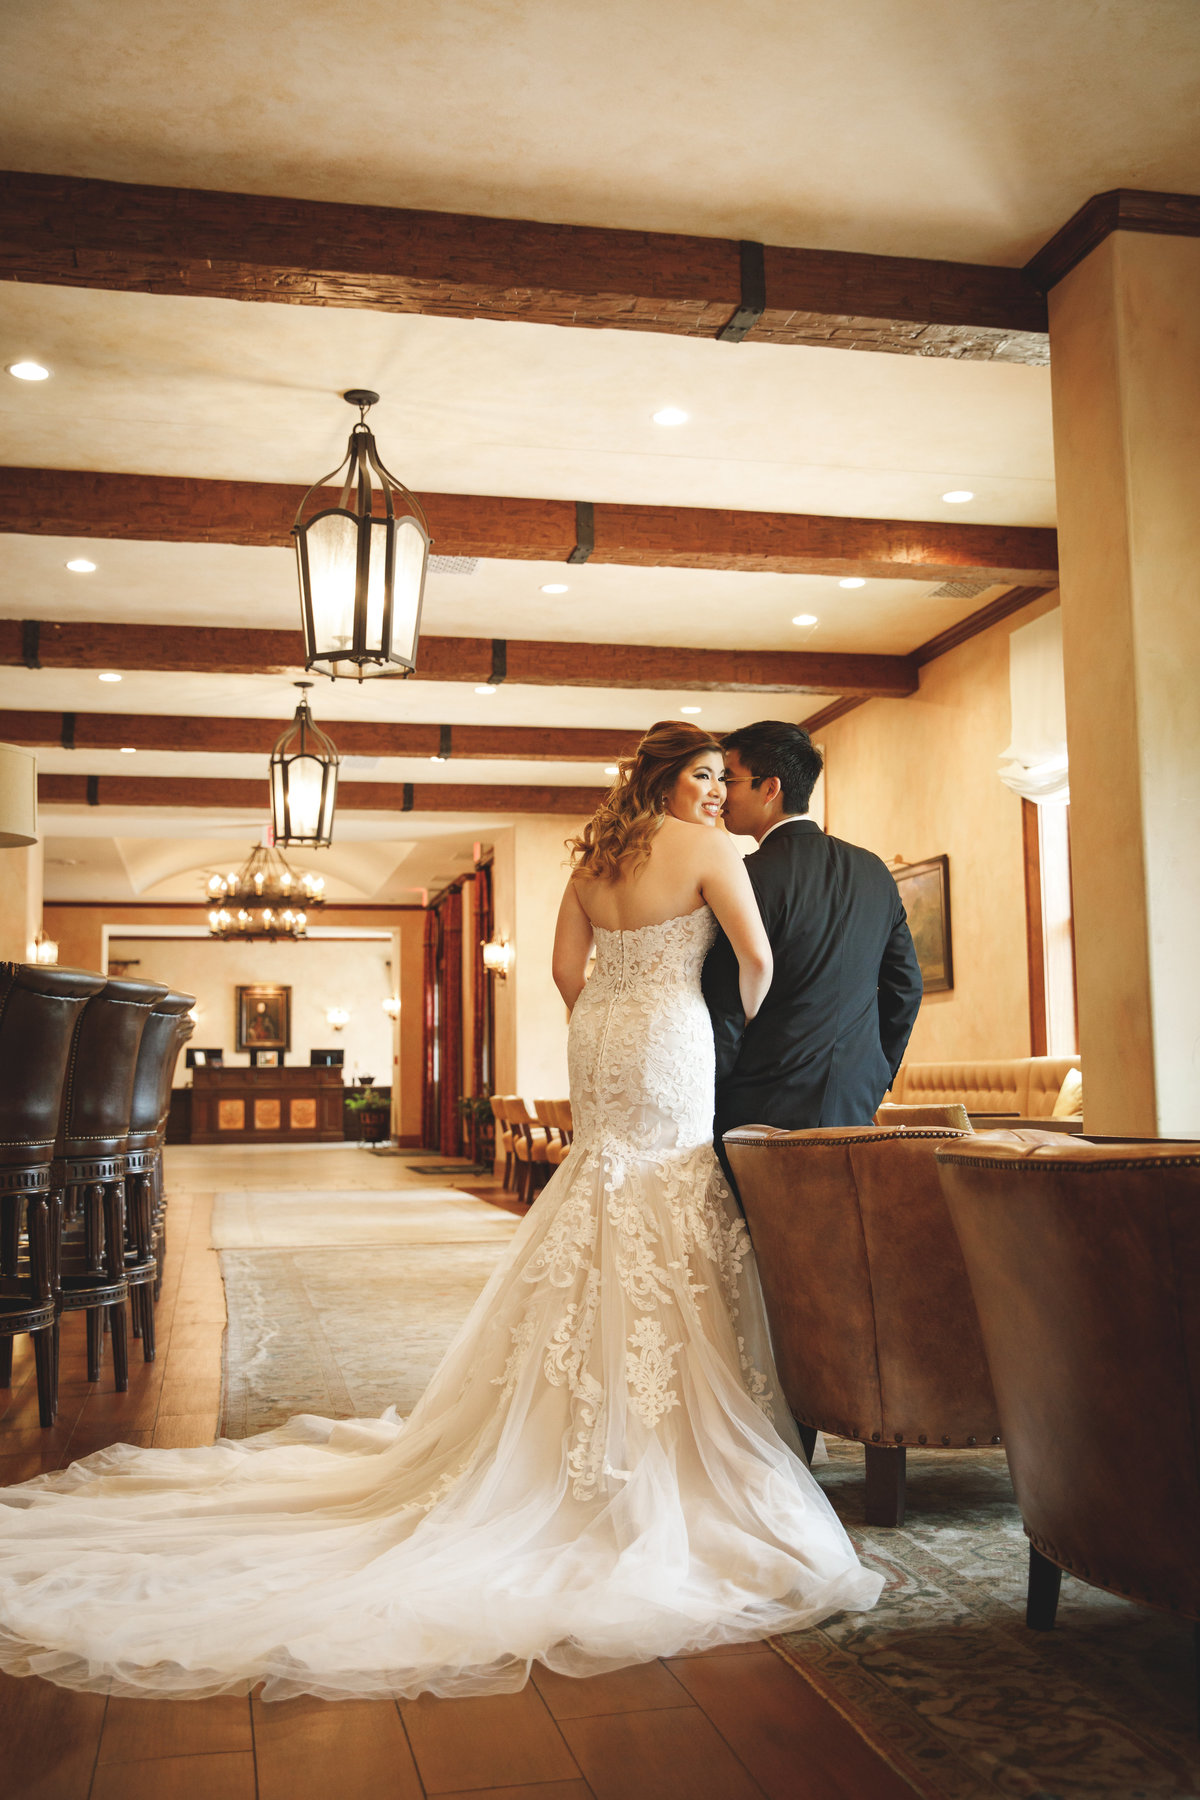 hotel granduca wedding photographer bride groom lobby 320 S Capital of Texas Hwy, West Lake Hills, TX 78746